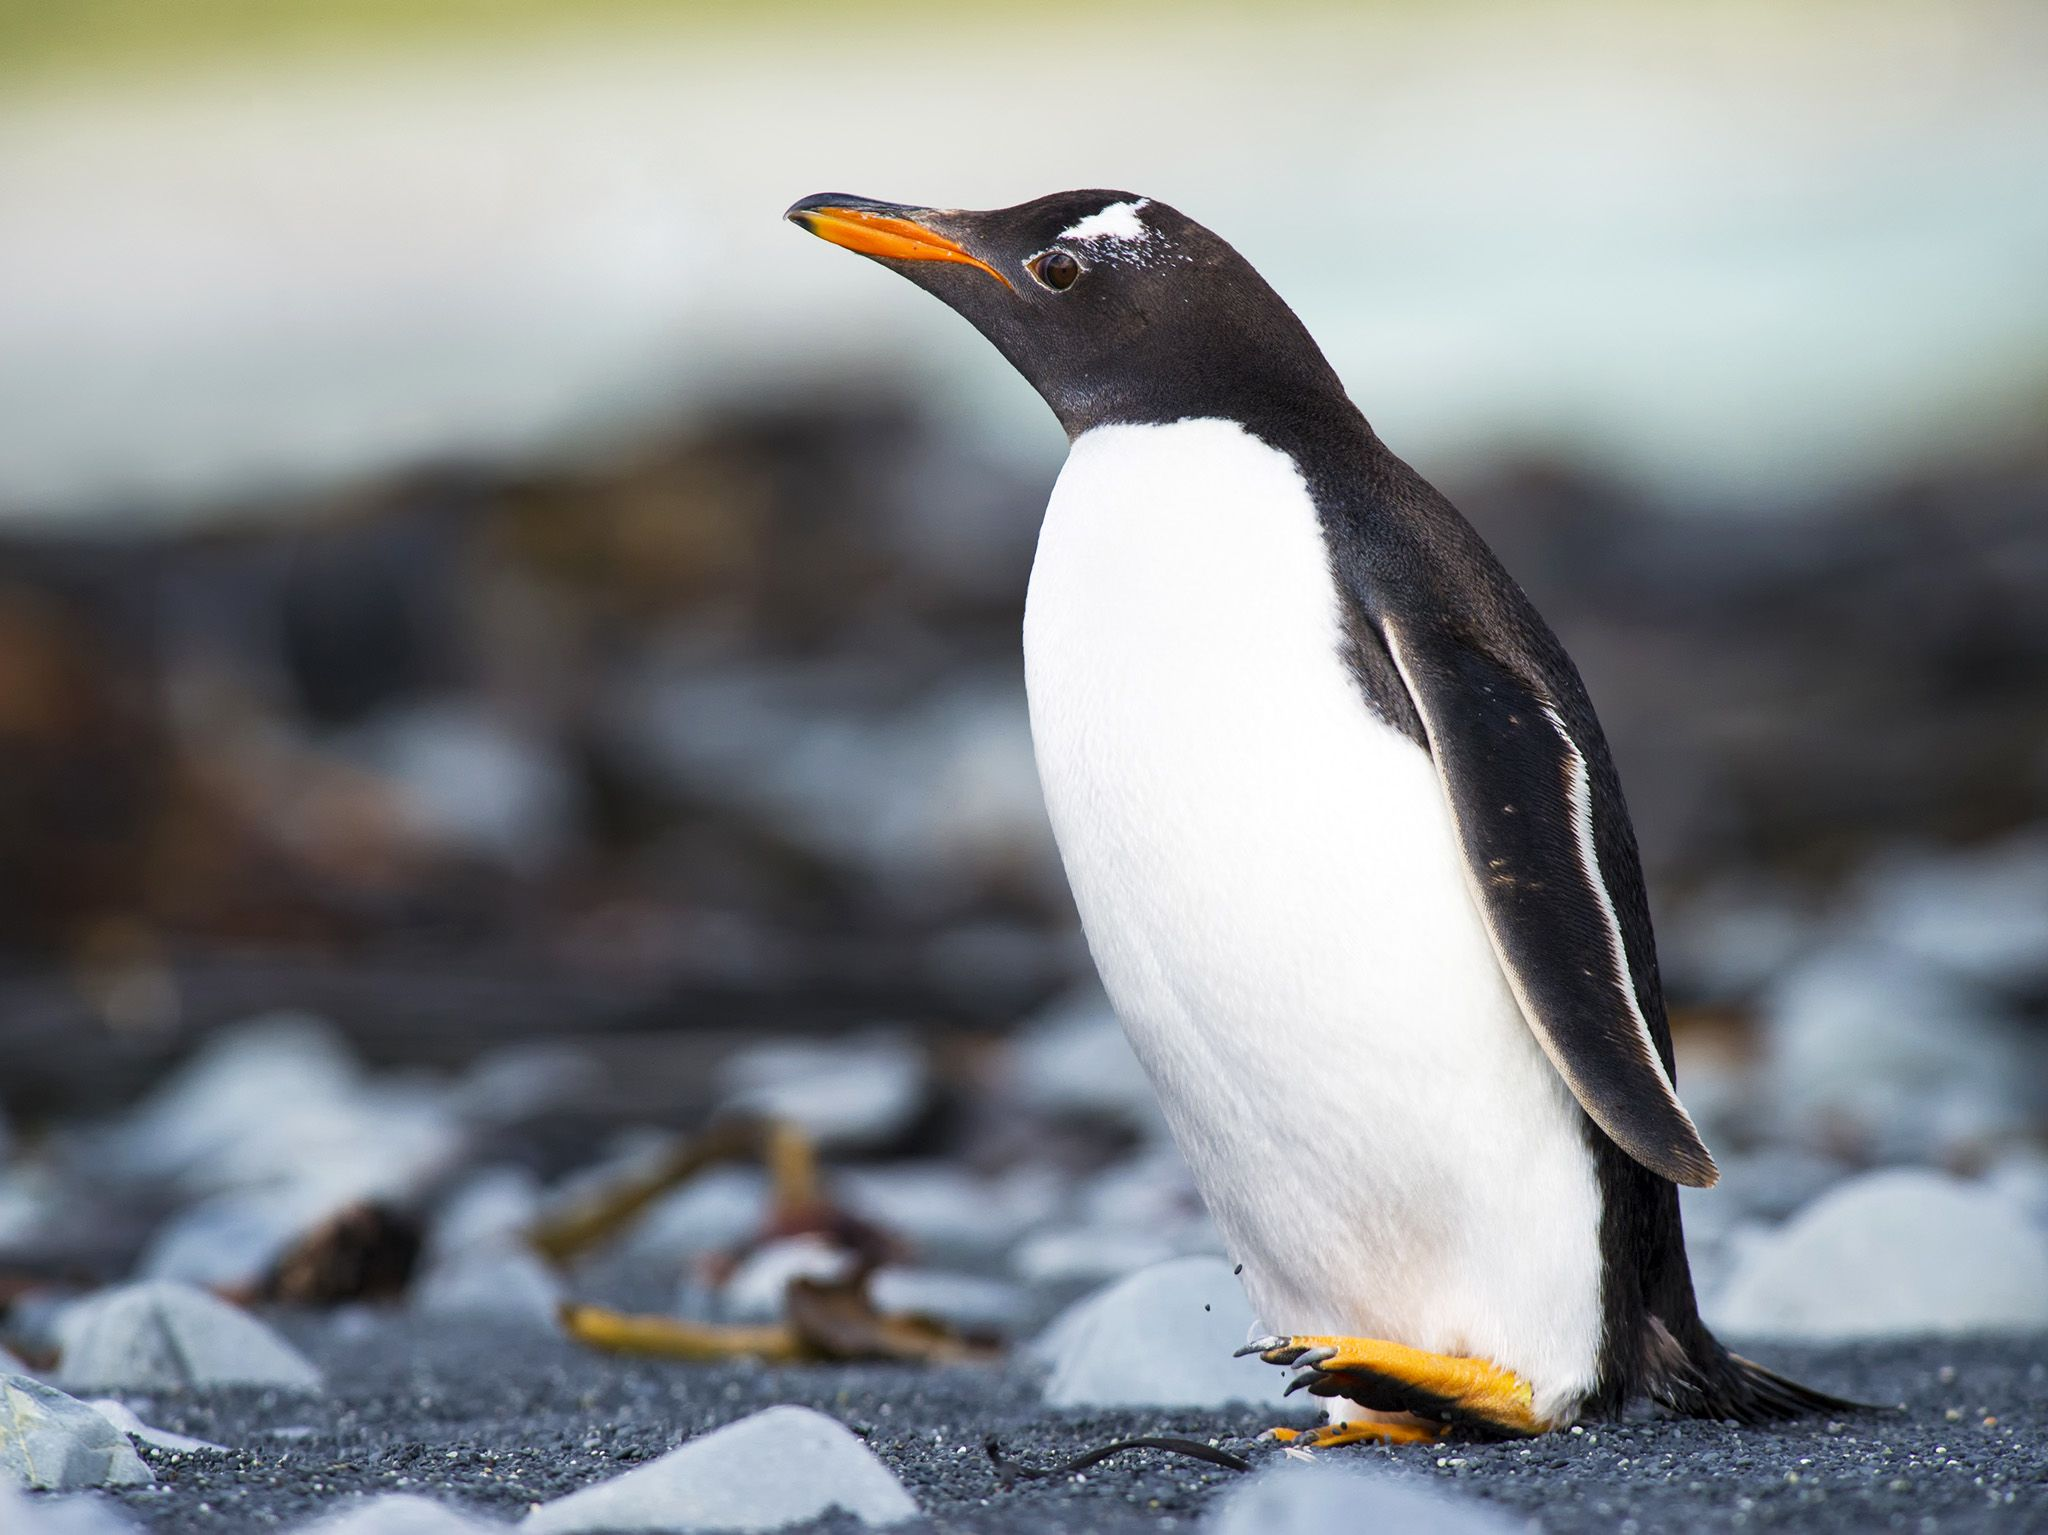 Macquarie Island, Australia:  Gentoo Penguin (Pygoscelis papua) walking on a rocky beach. This... [Photo of the day - May 2018]